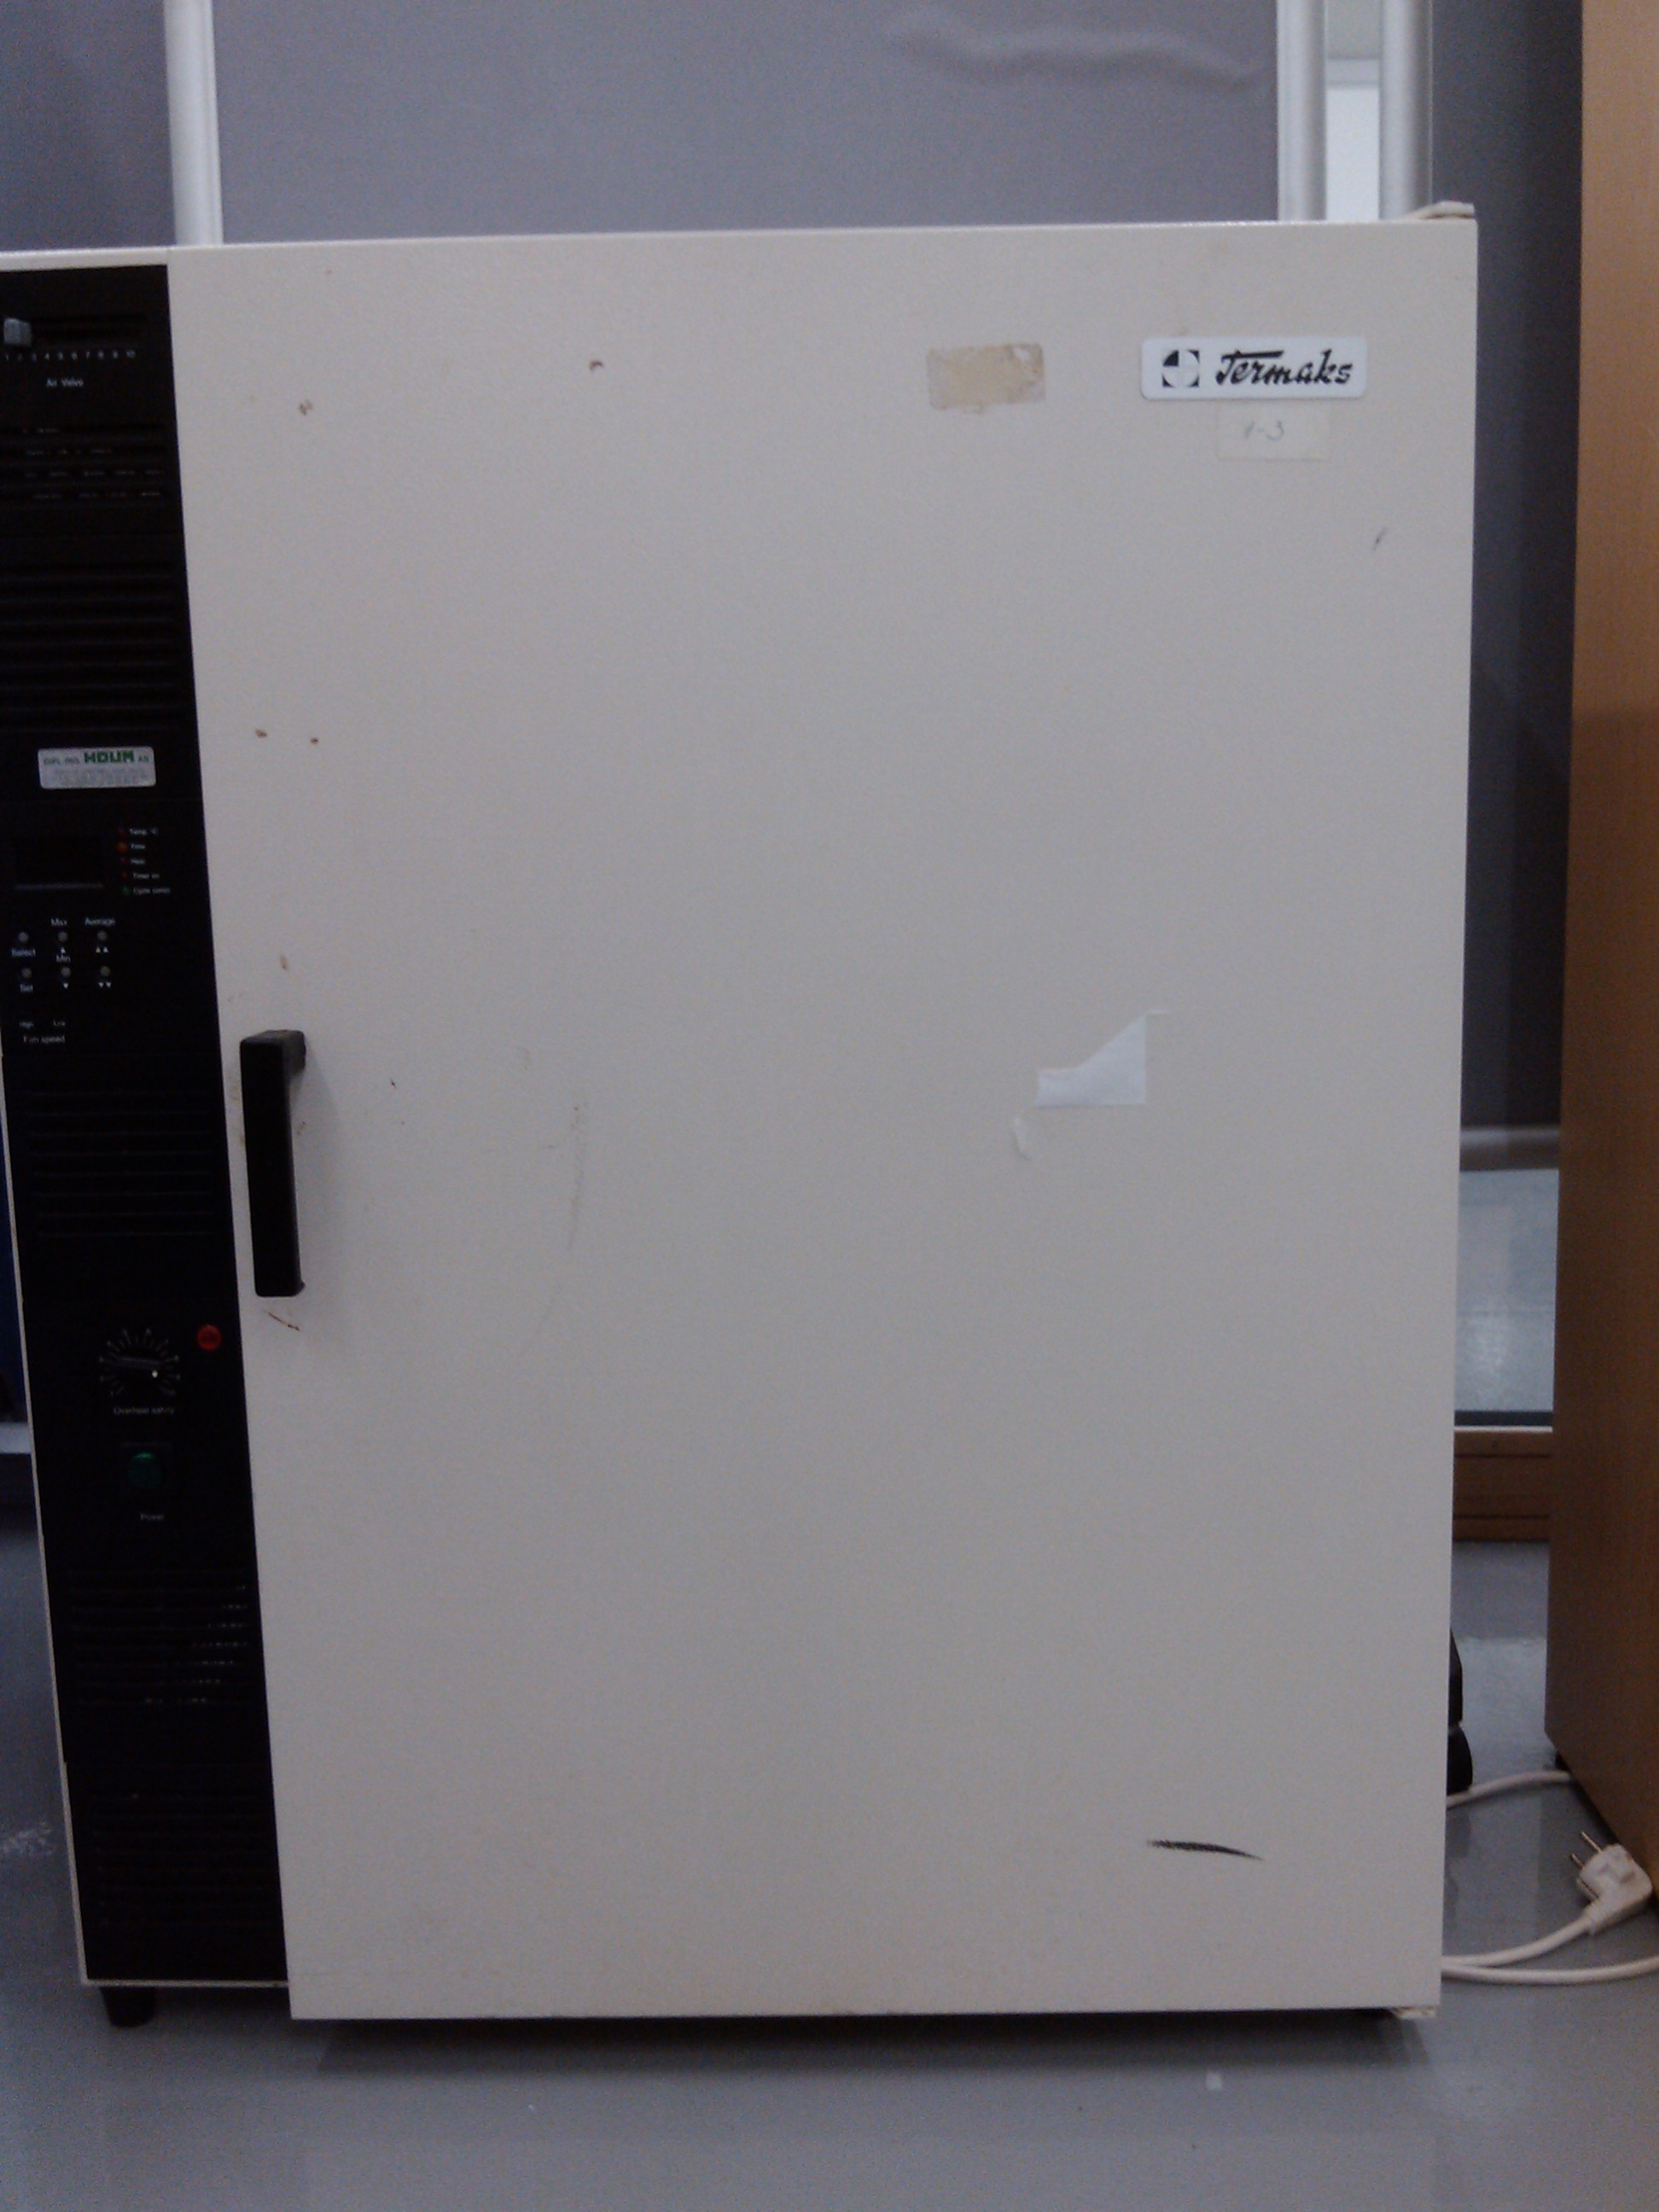 Picture of Thermal Chamber Thermaks TS4115